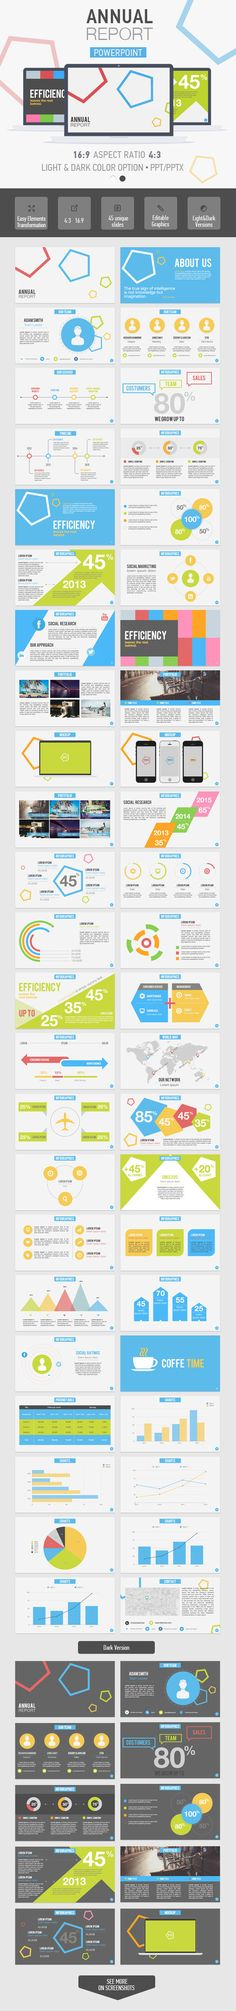 Annual Report Powerpoint Template  #clean #colorful #marketing • Click here to download ! http://graphicriver.net/item/annual-report-powerpoint-template/7054721?s_rank=1042&ref=pxcr